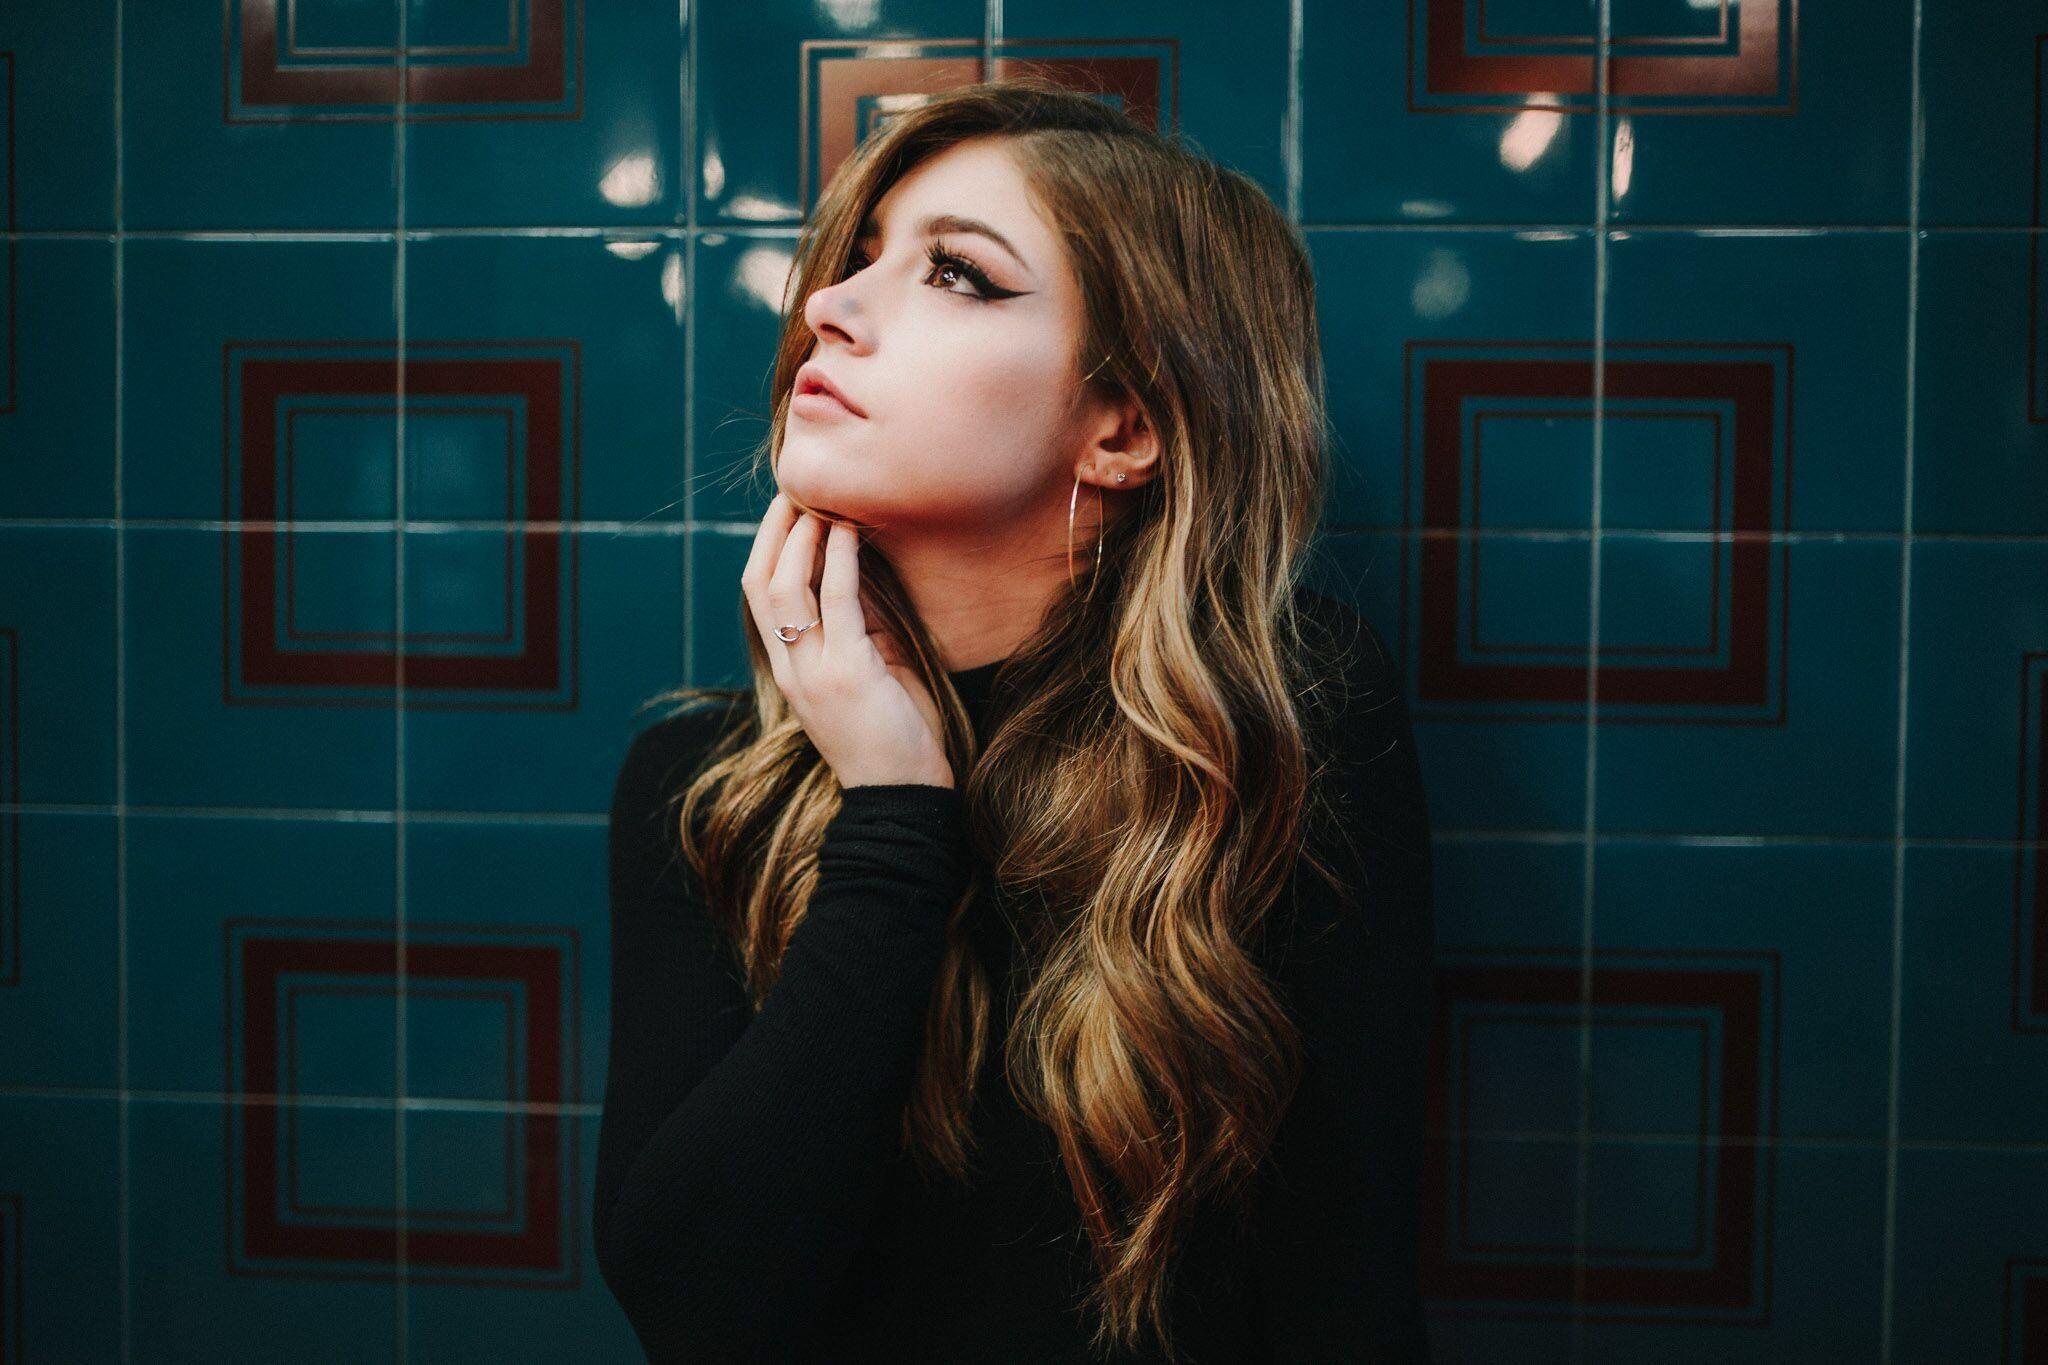 Chrissy Costanza, Against The Current Chrissy Constanza, Atc, Aesthetics,  Queens, Stars